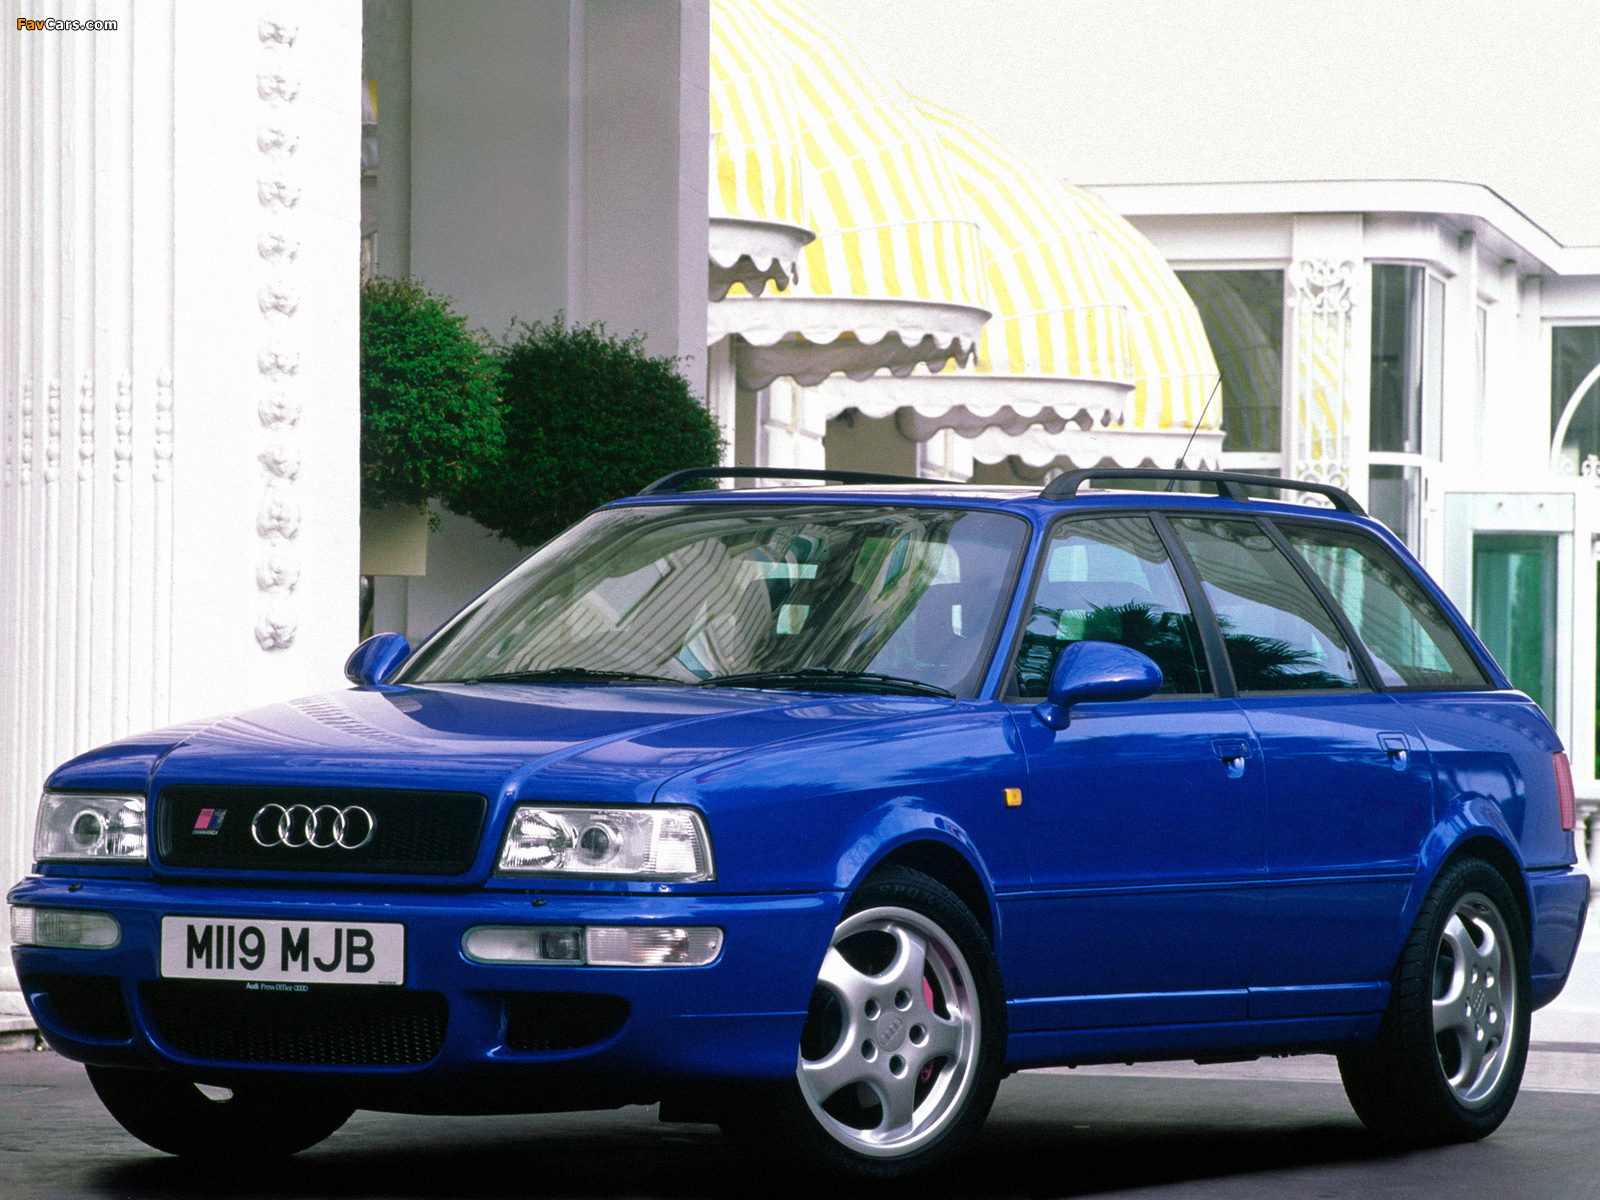 Why The Audi Rs2 Is A Proper 90s Hero Car